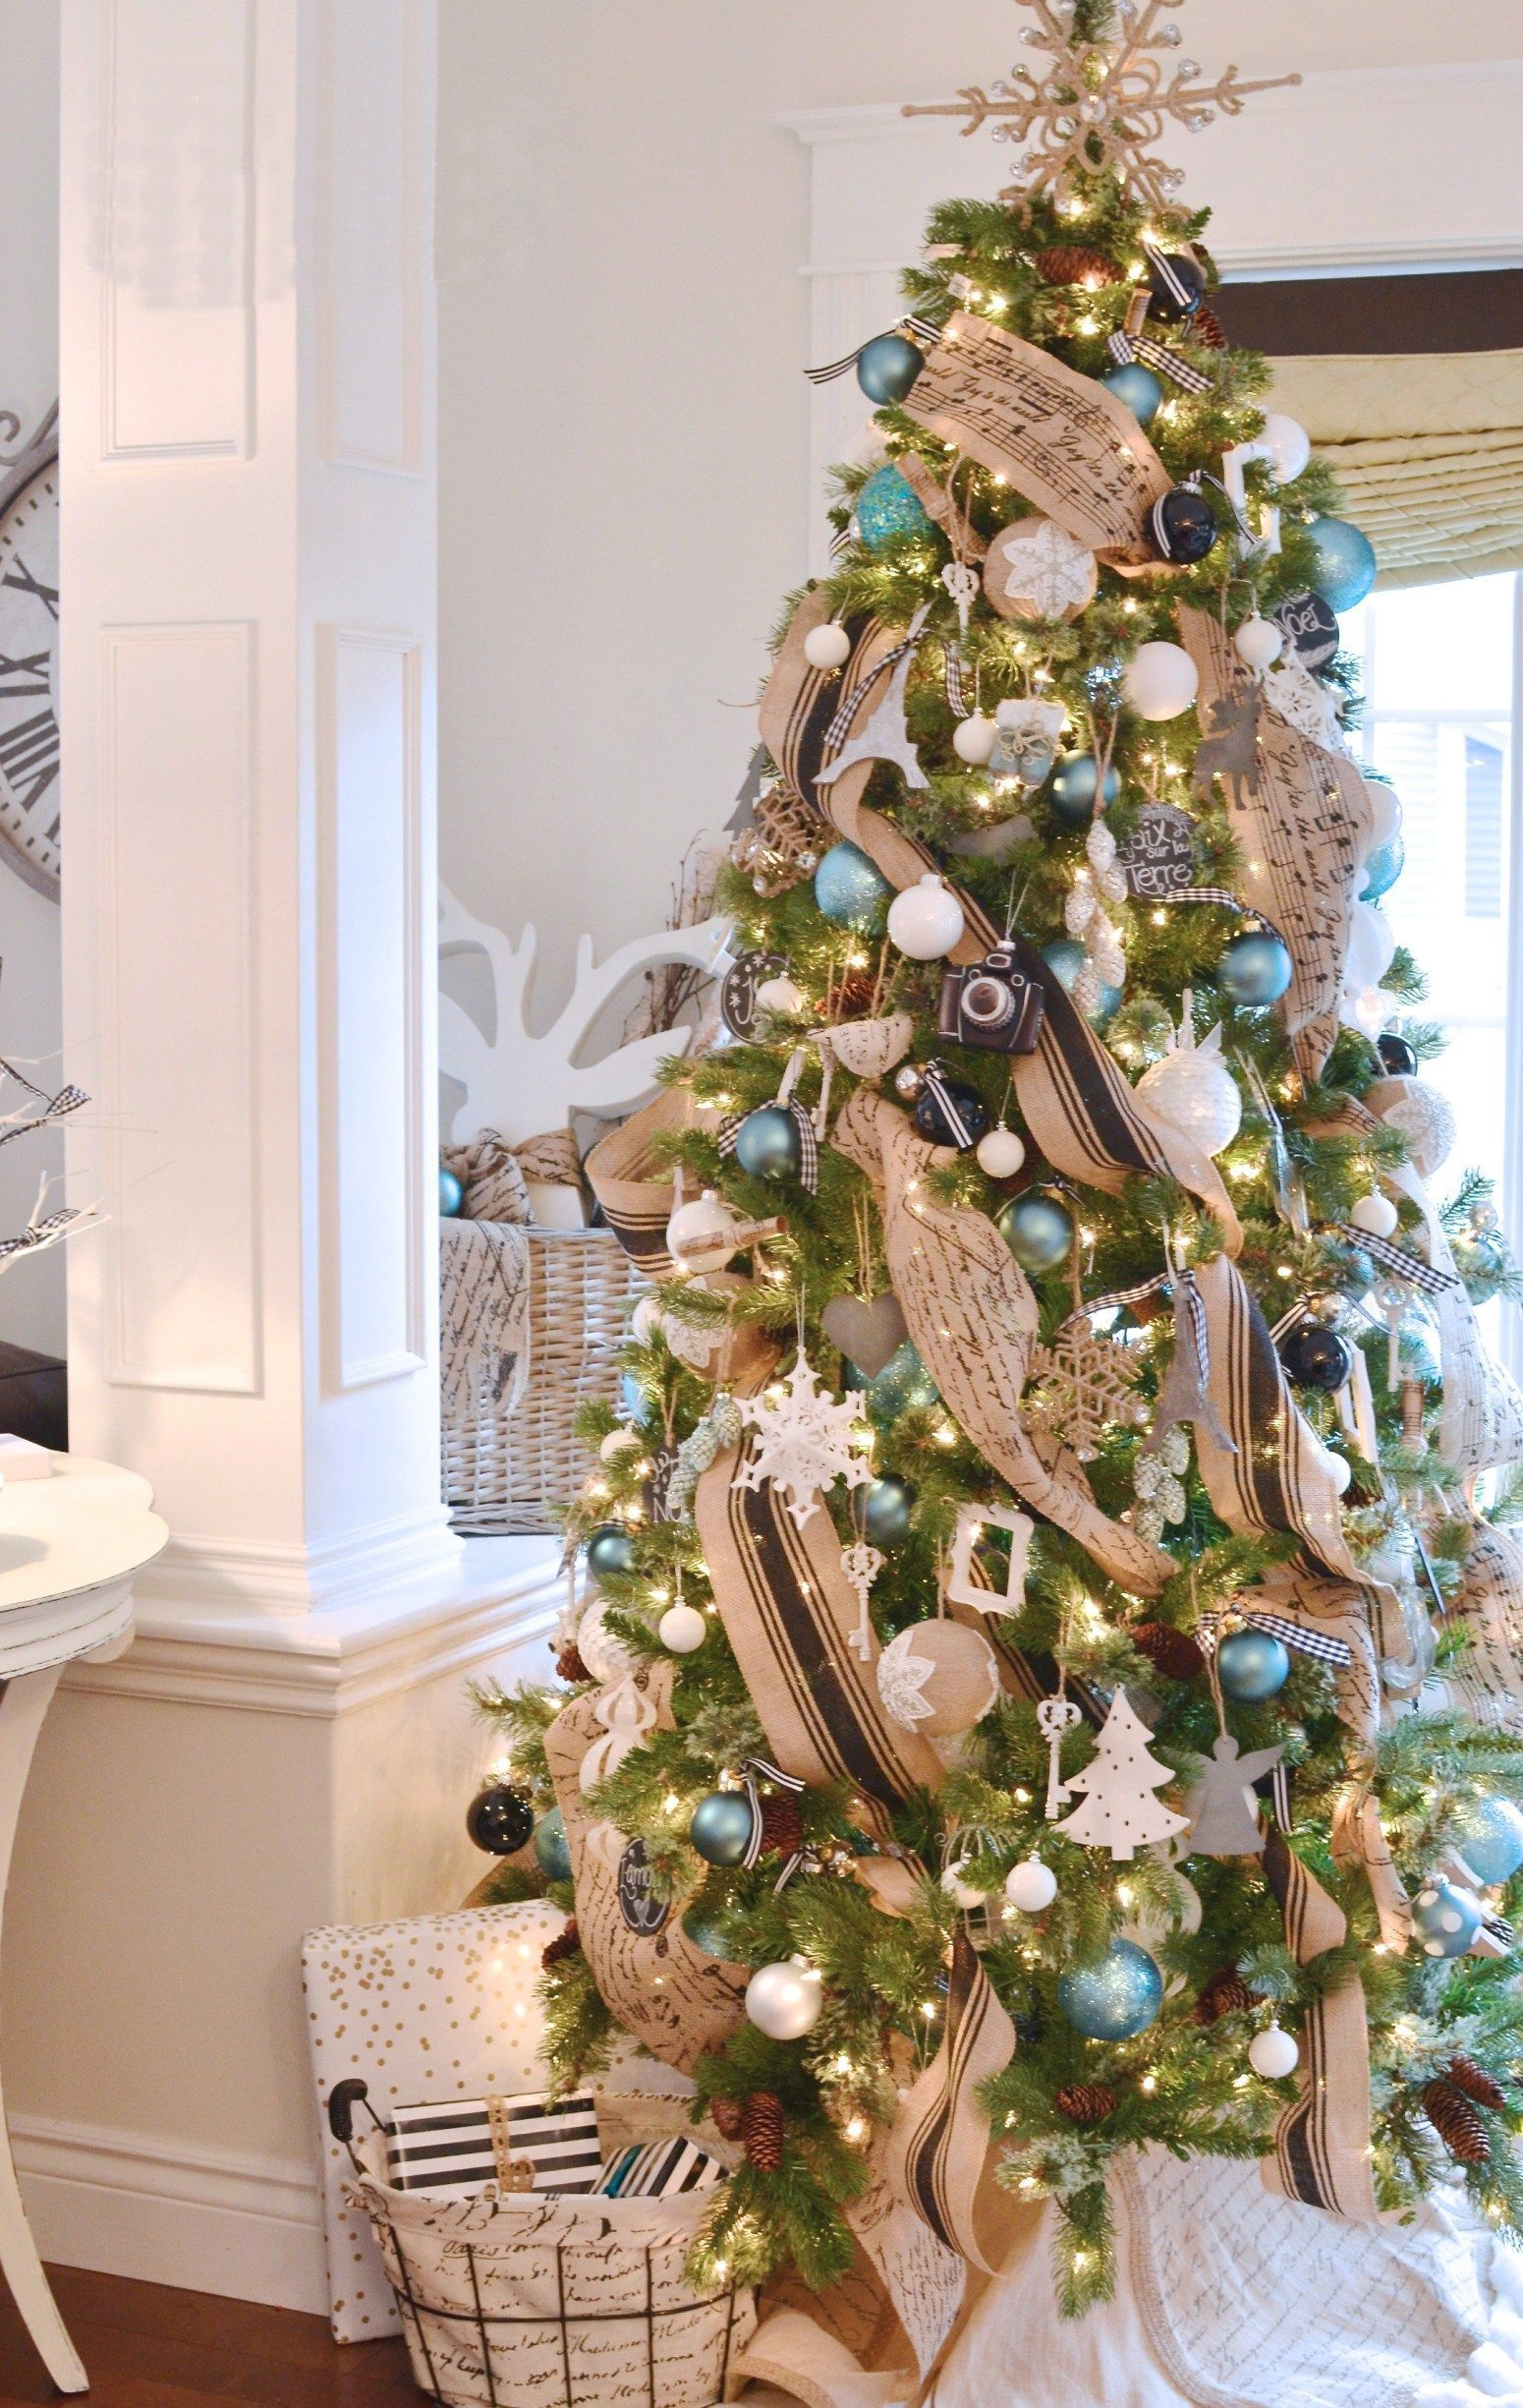 Pin by DeAnn Cromer Piper & Hollow on MERRY CHRISTMAS